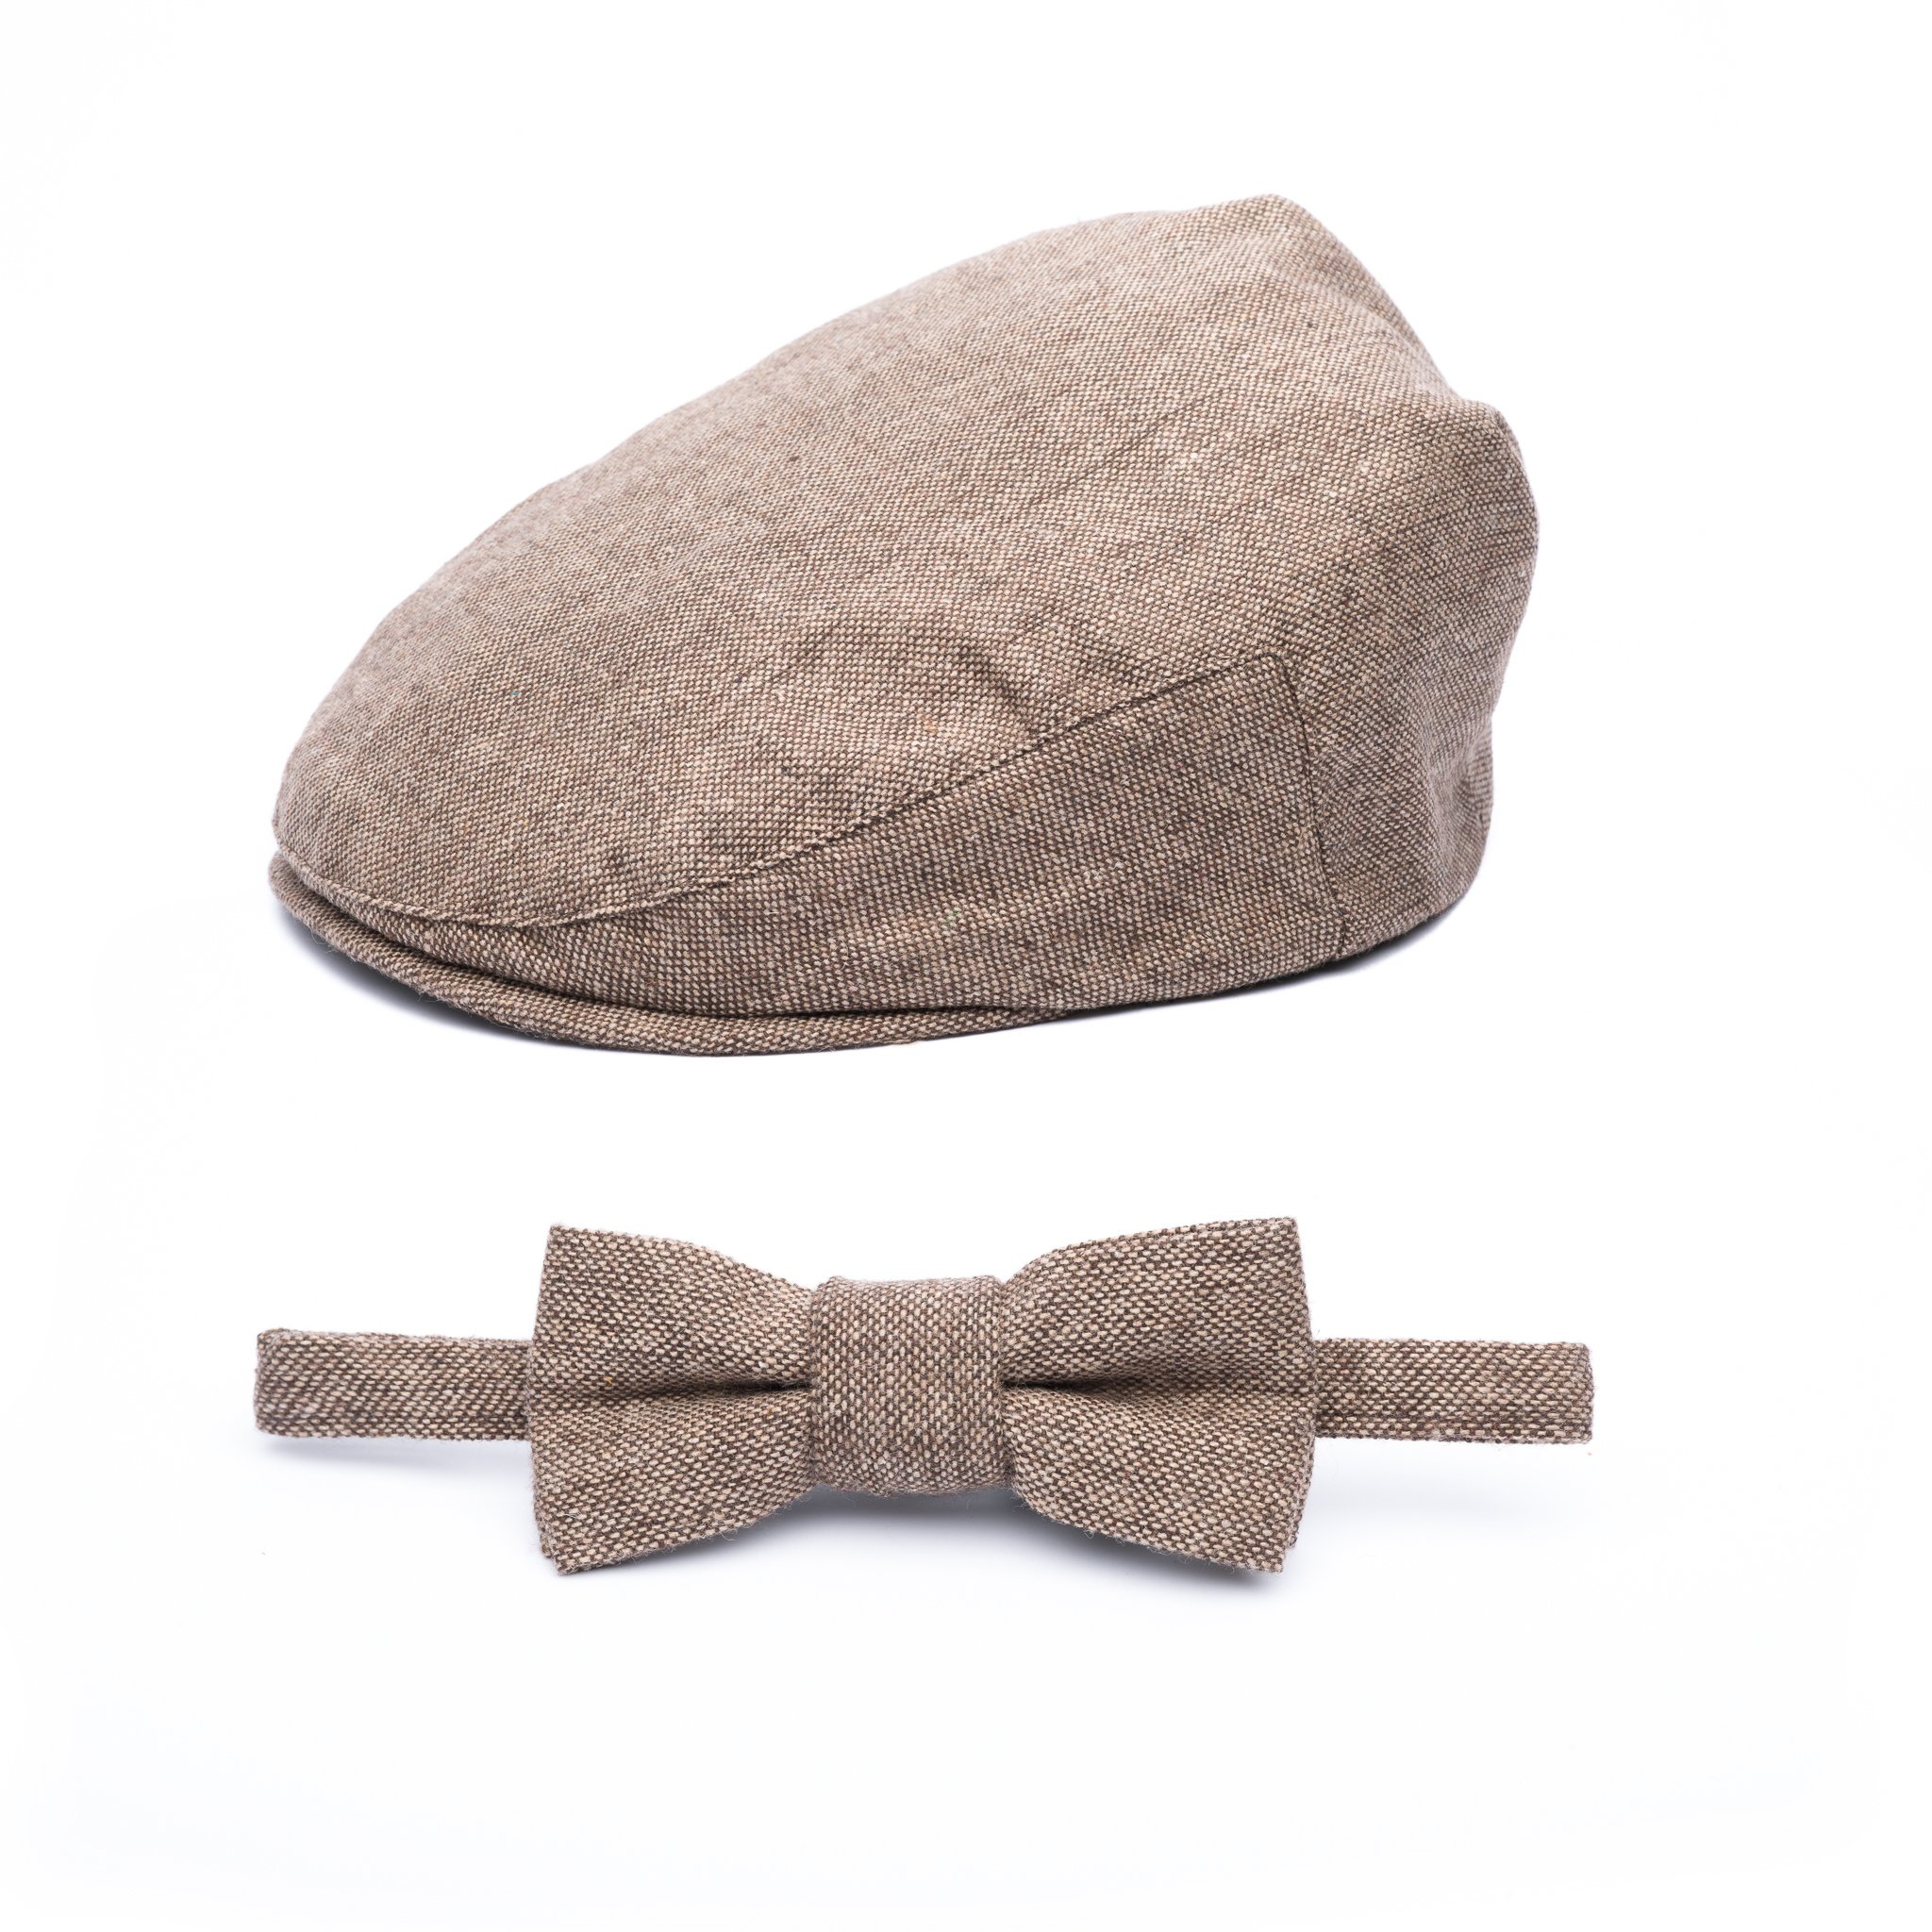 Born to Love - Baby Boy's Hat Vintage Driver Caps (XL 56cm (6-8 yrs), tan with Bow) by Born to Love (Image #1)